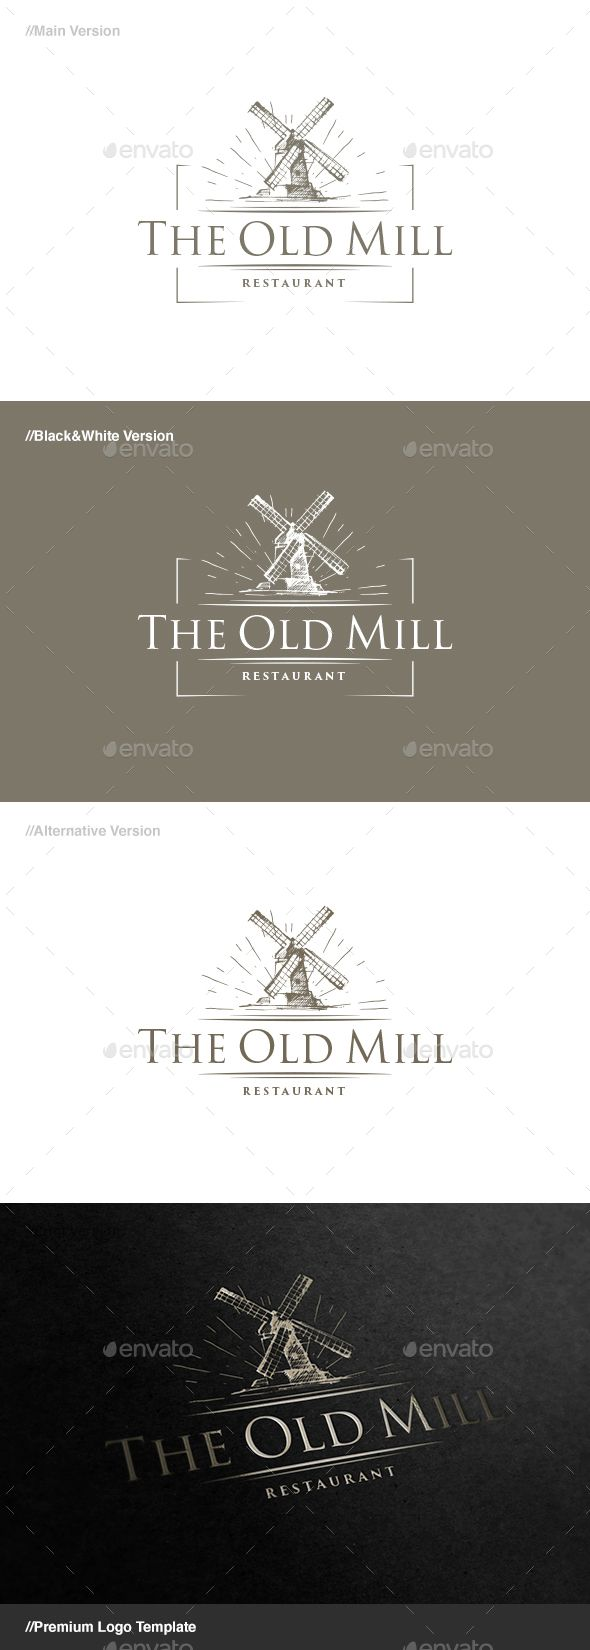 The Old Mill Logo Template Vector EPS, AI. Download here: http://graphicriver.net/item/the-old-mill-logo/15186110?ref=ksioks